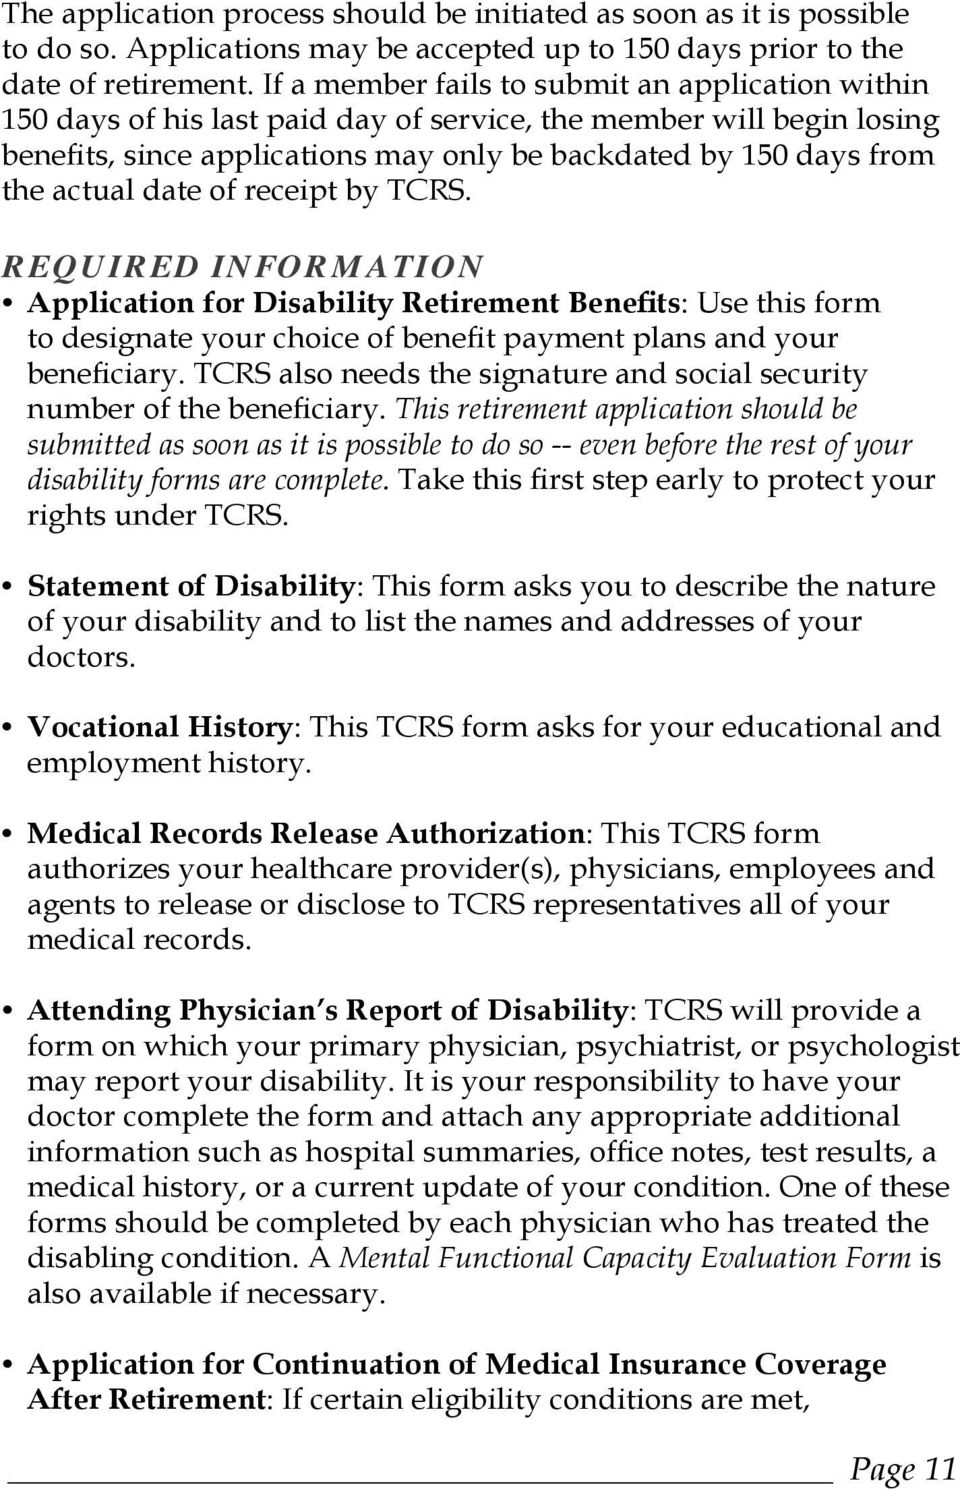 date of receipt by TCRS. REQUIRED INFORMATION Application for Disability Retirement Benefits: Use this form to designate your choice of benefit payment plans and your beneficiary.